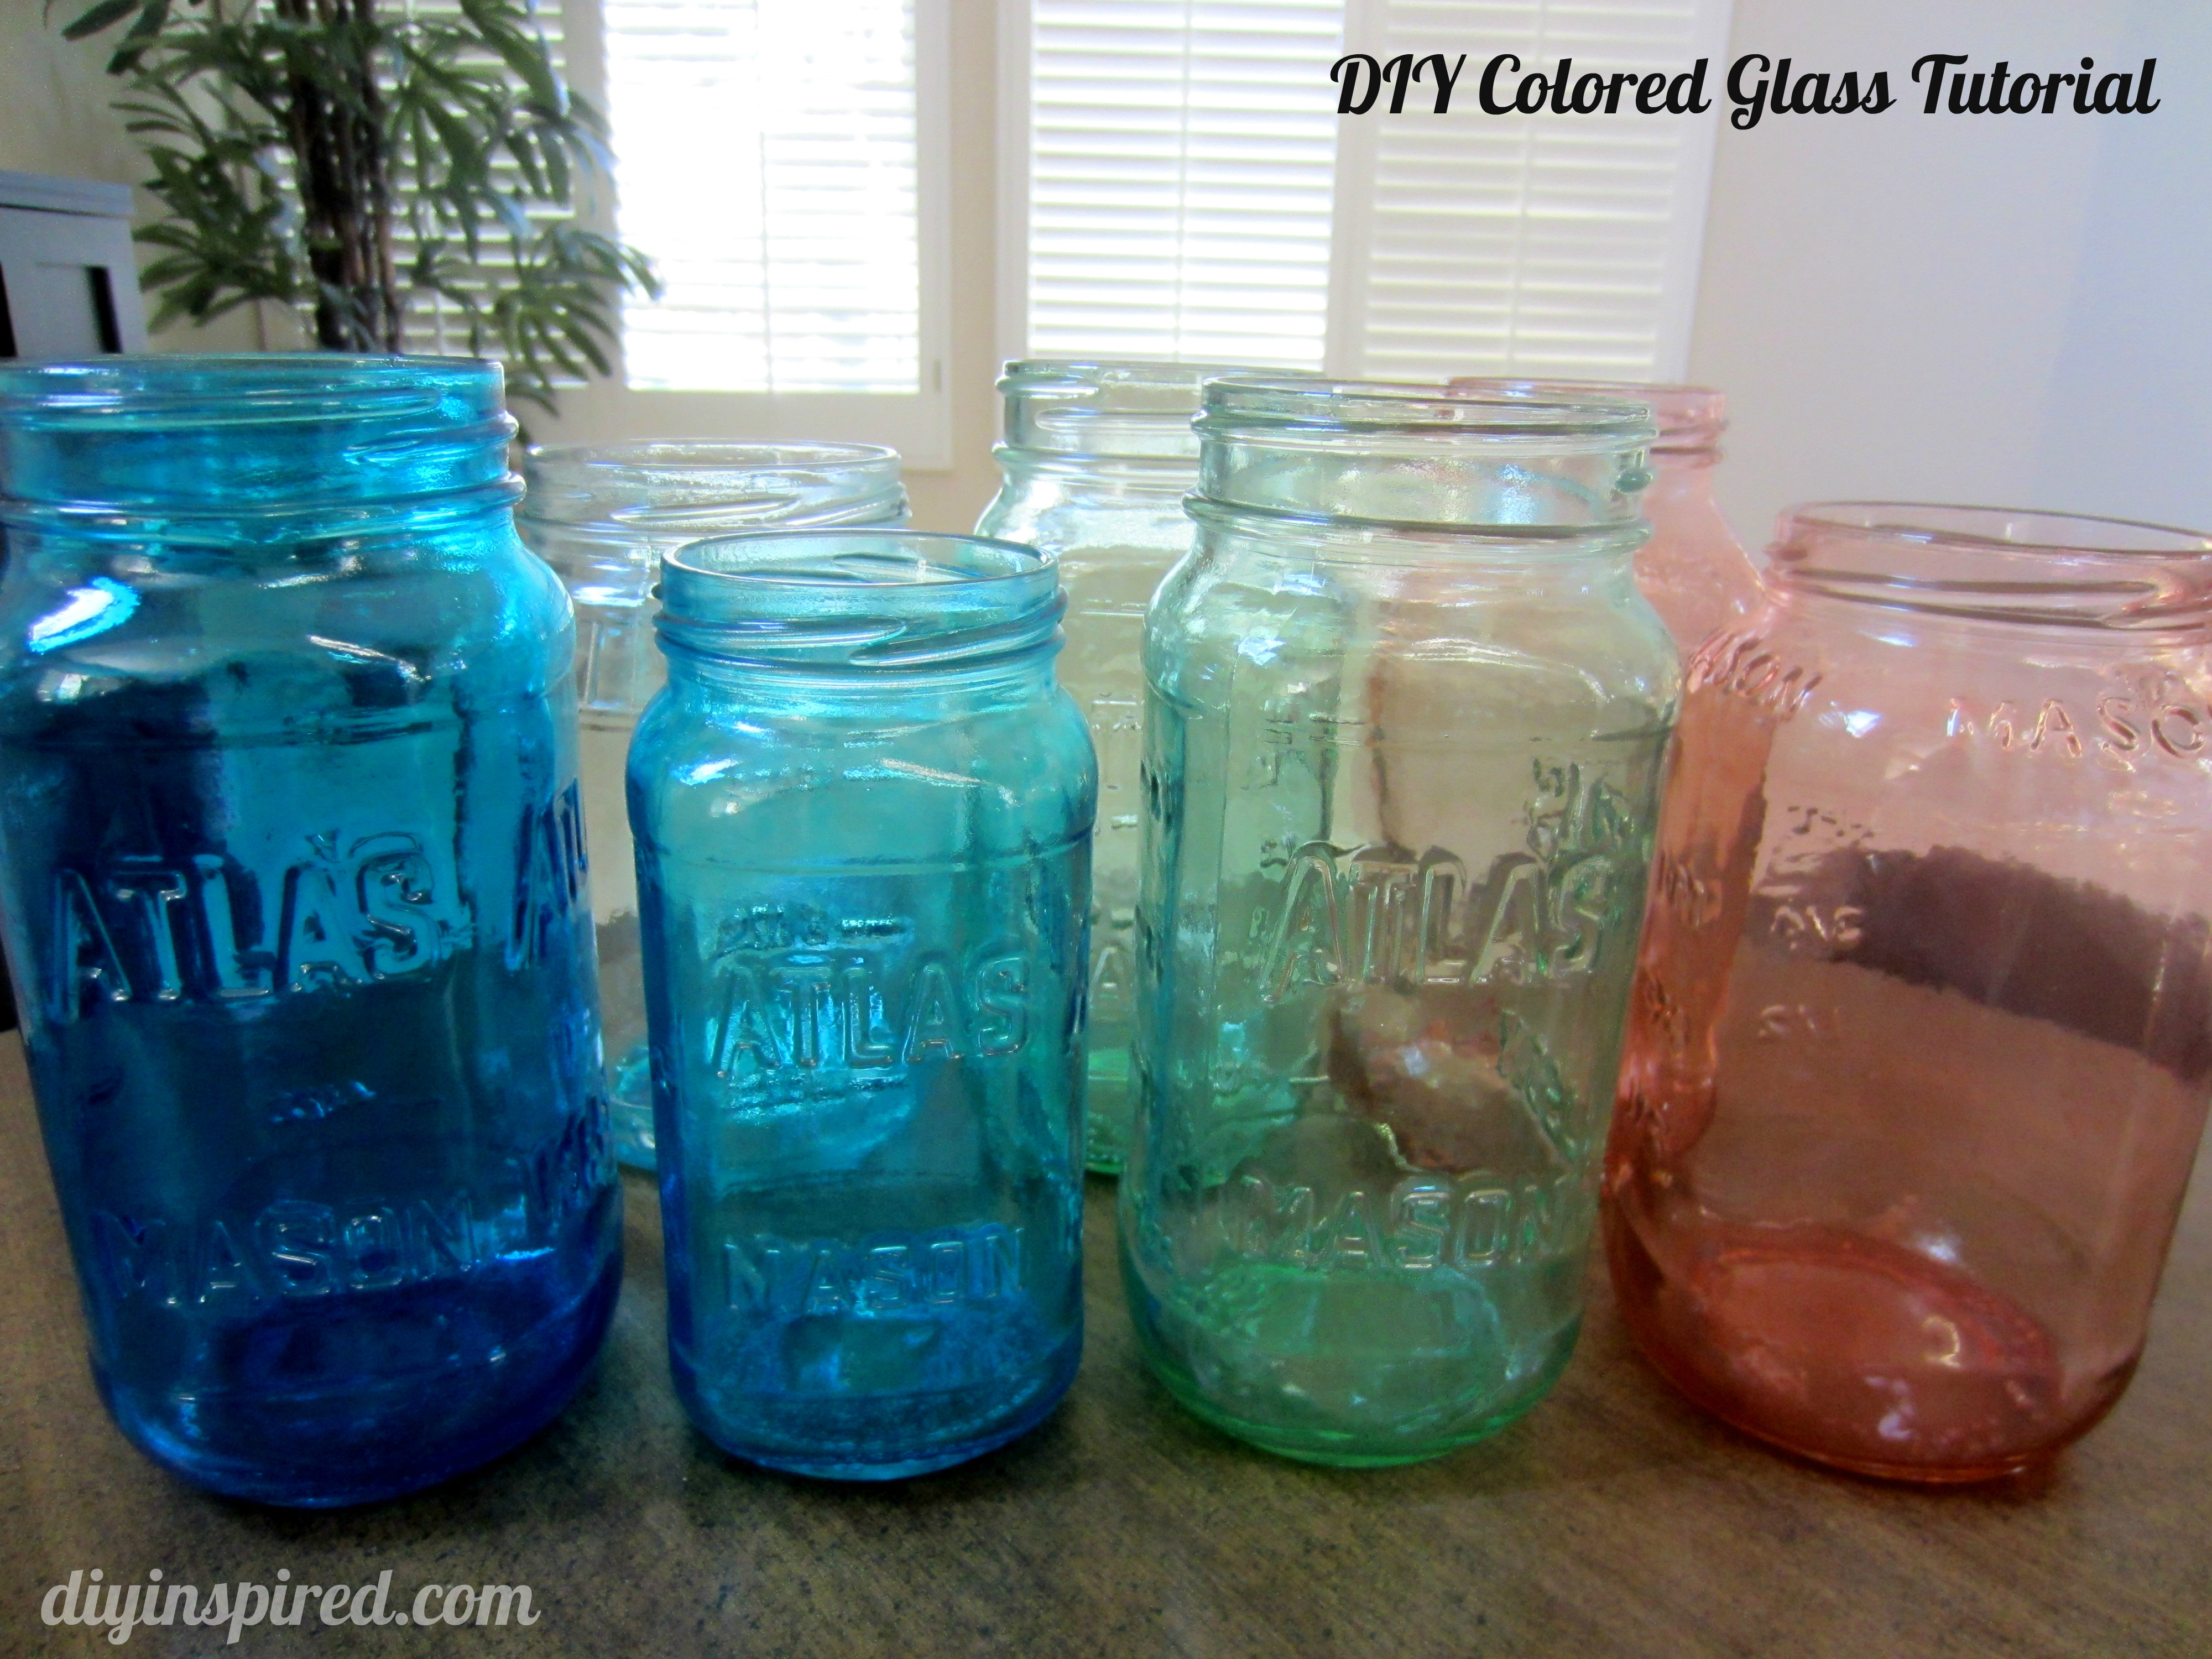 DIY Colored Glass Tutorial Inspired